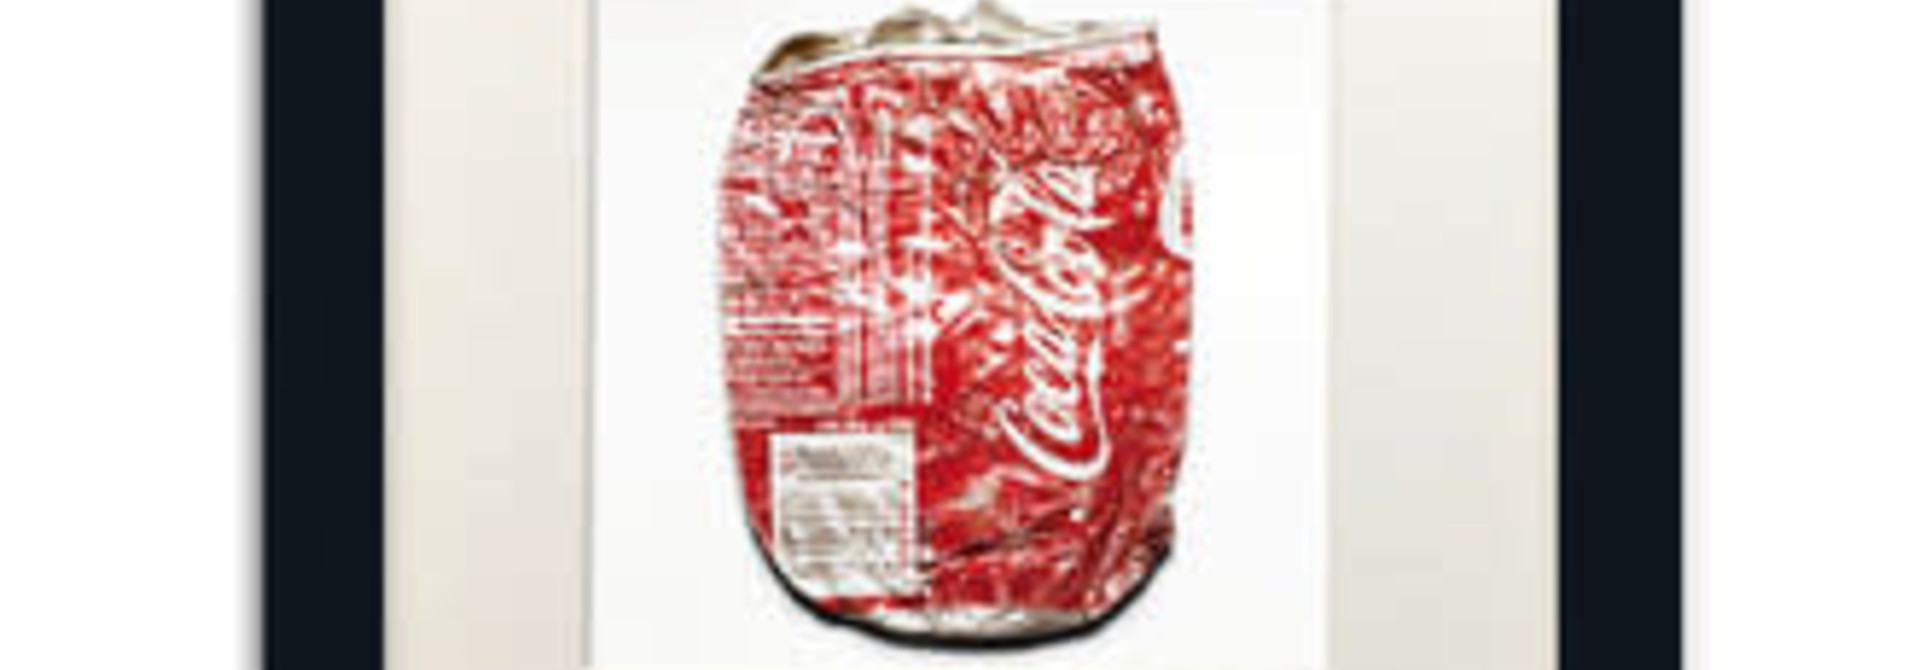 M24 ART PHOTO PRINTS, COKE CAN